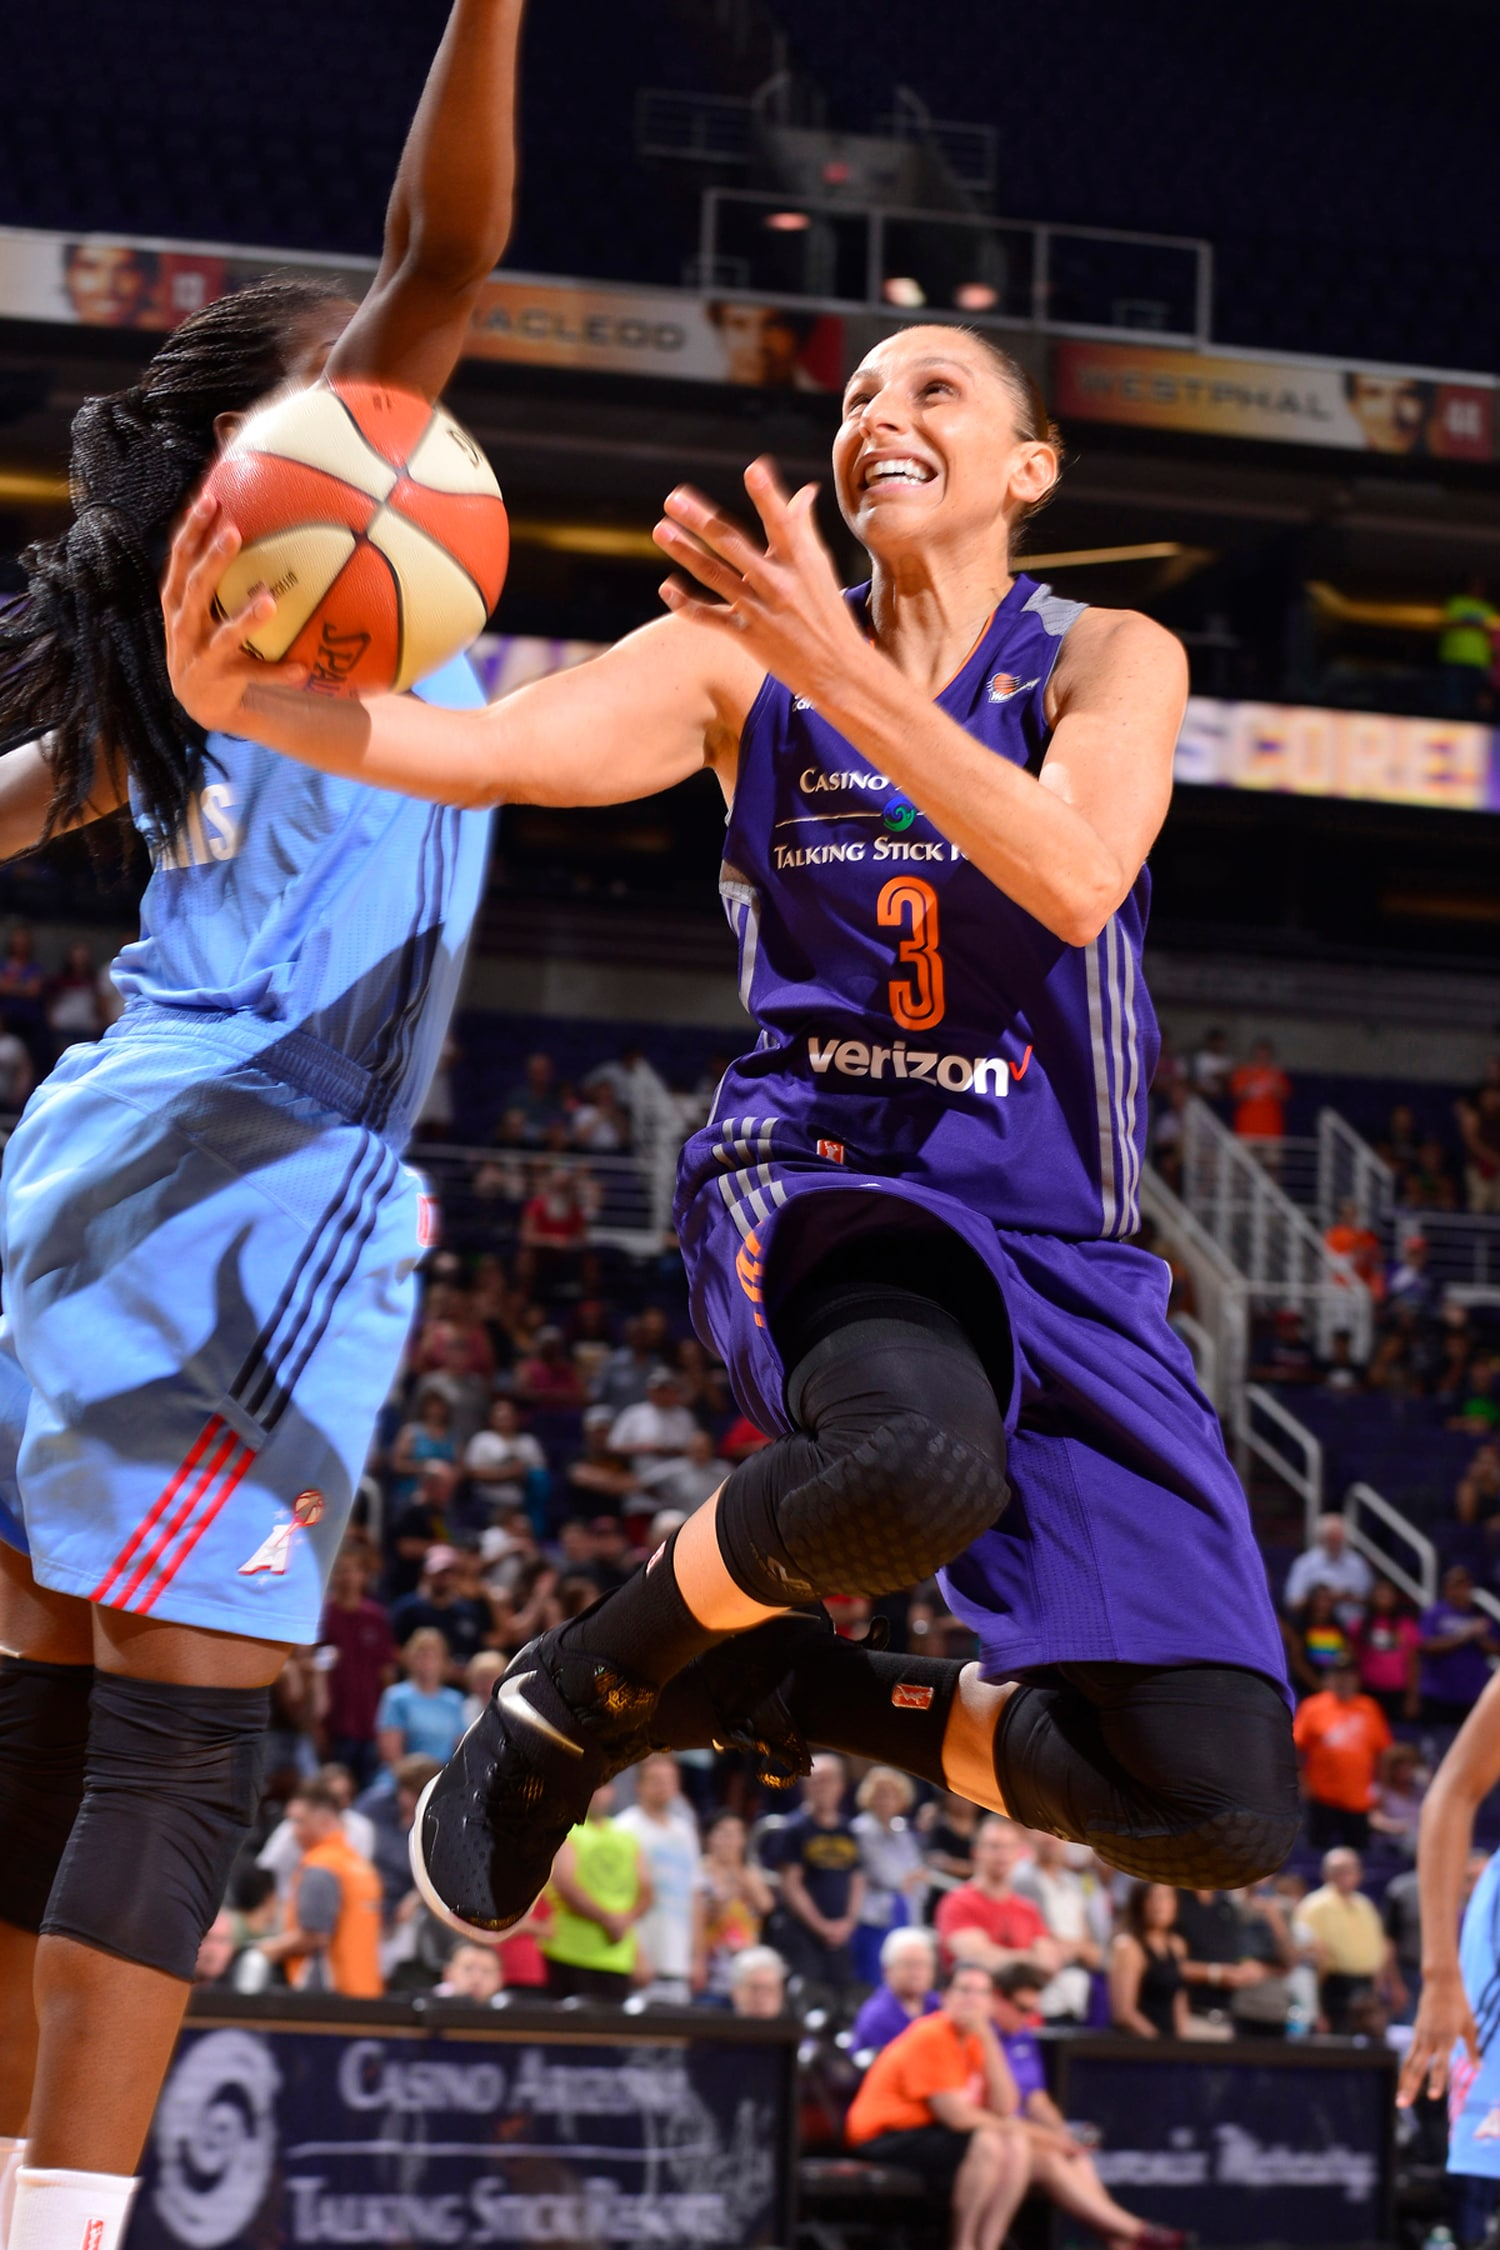 Phoenix Mercury vs Atlana Dream Diana Taurasi